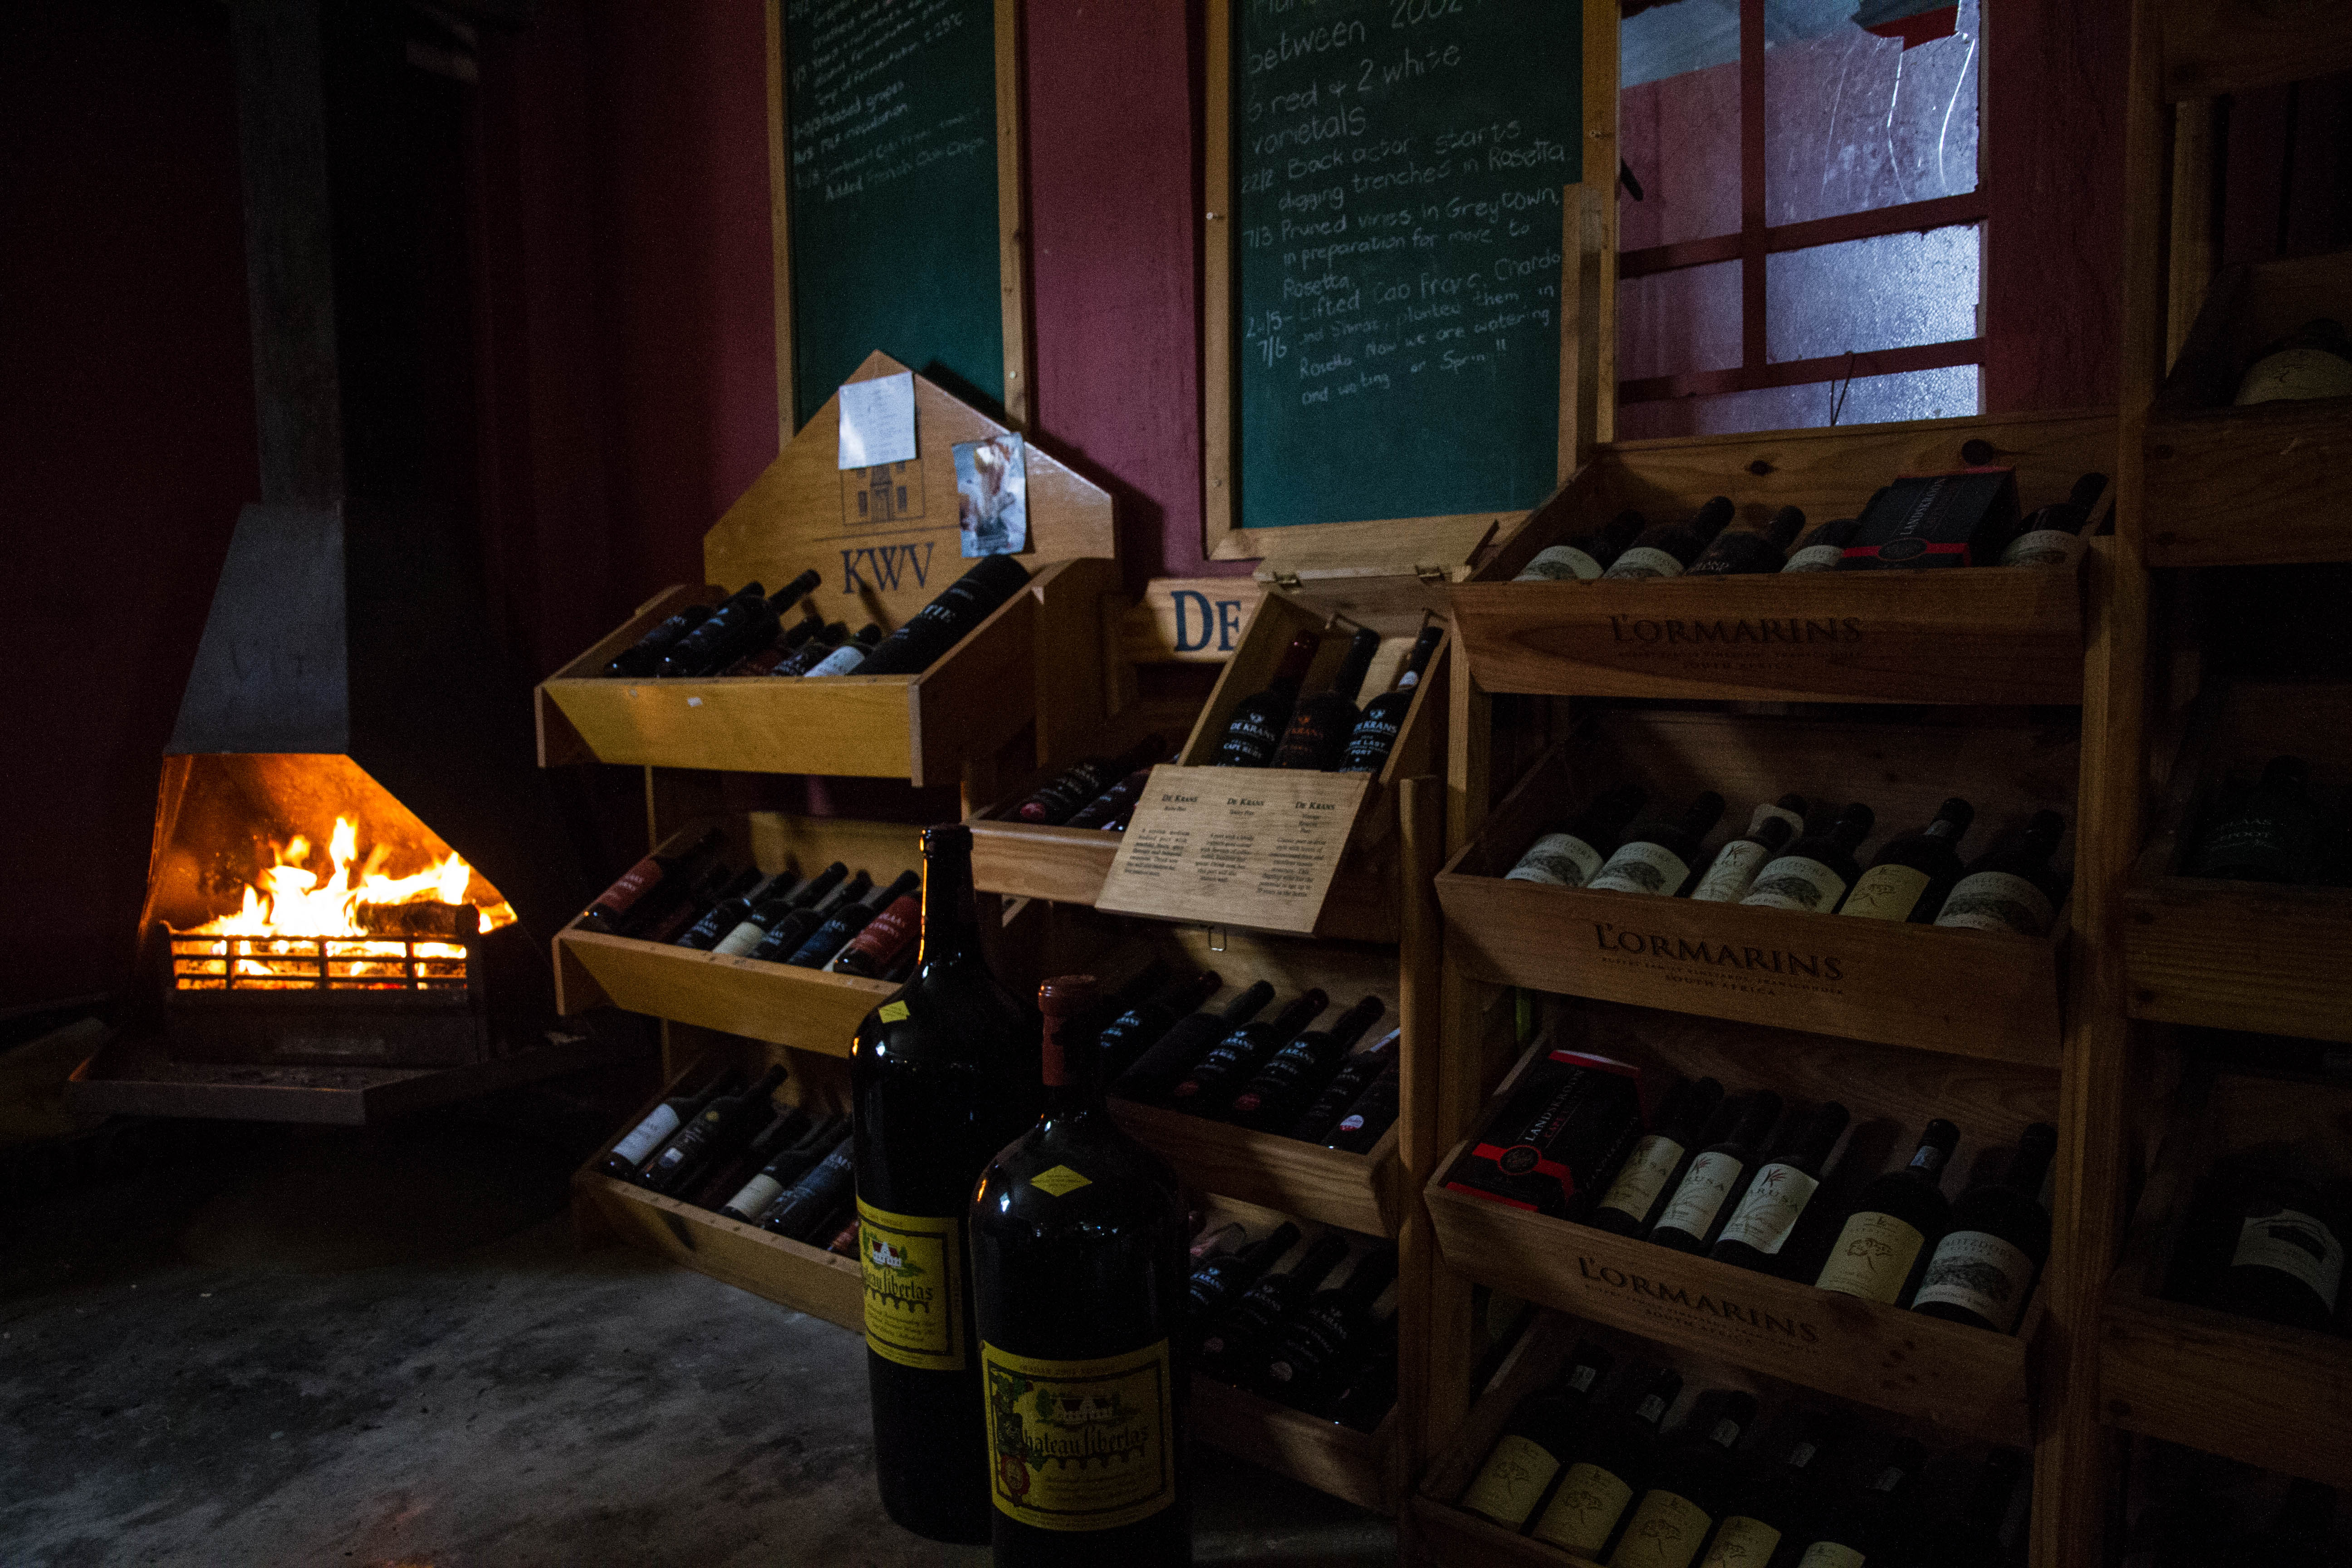 The Wine Cellar interior